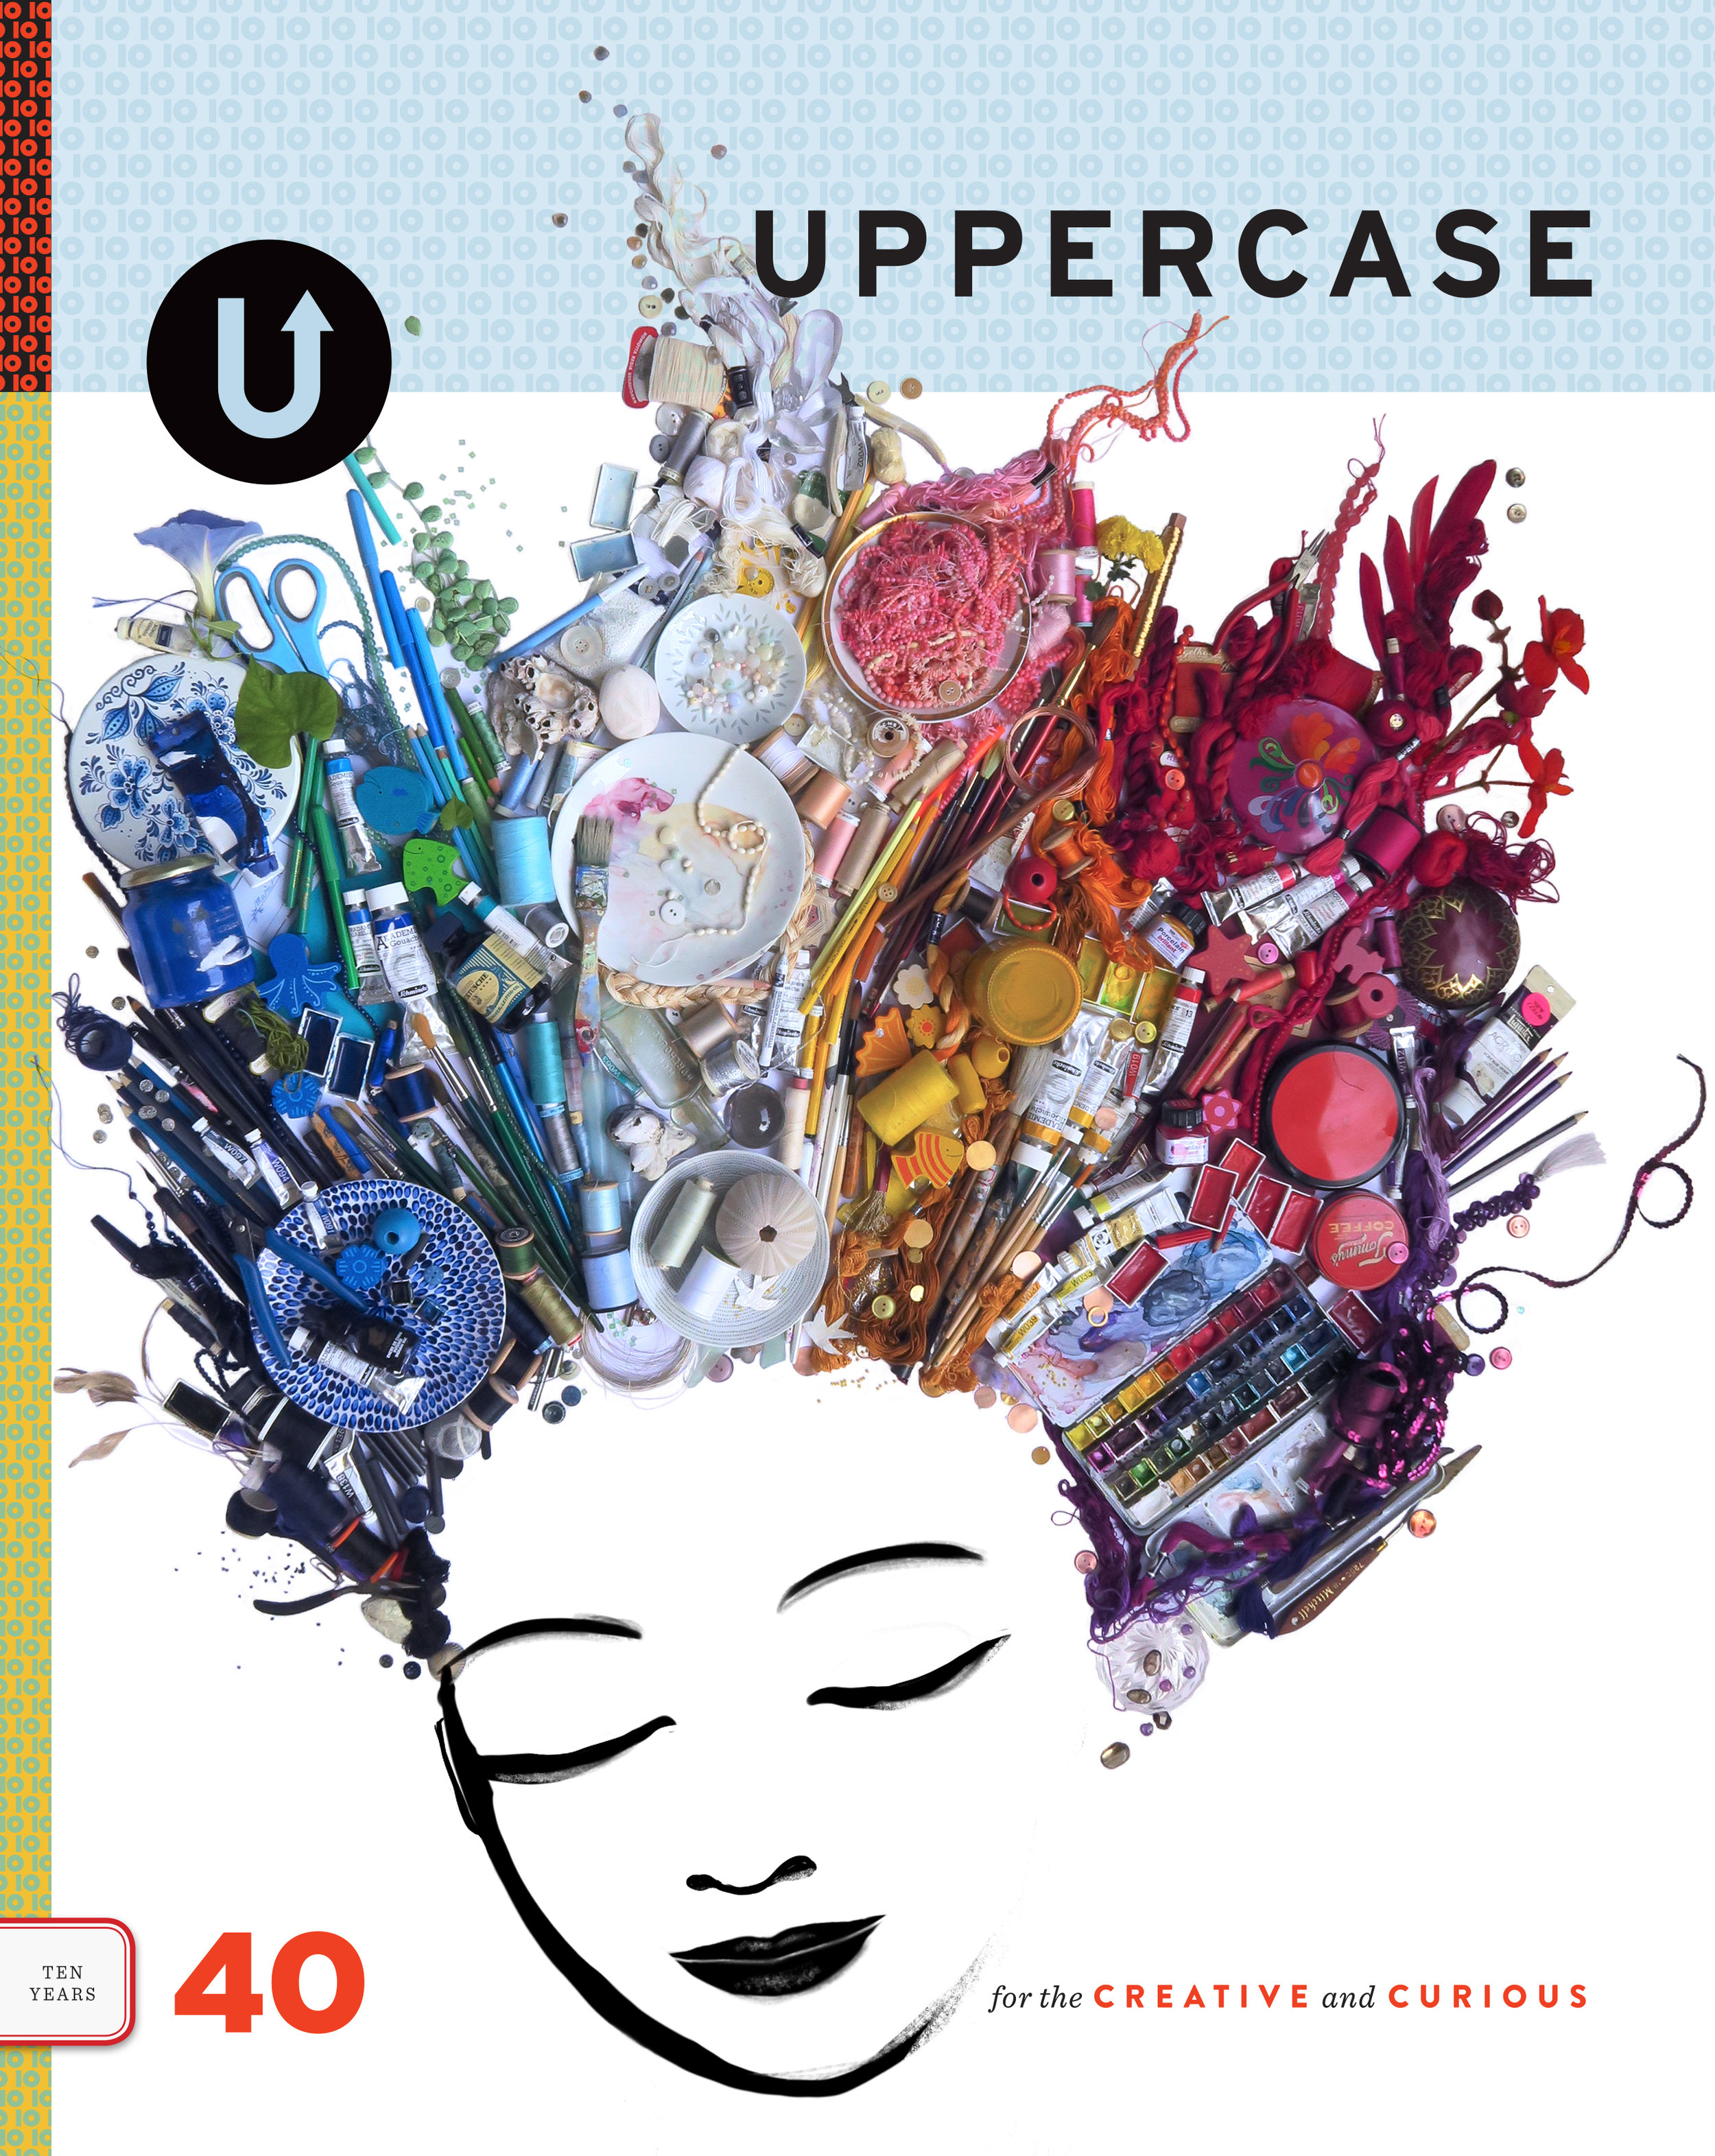 Submission for the cover of the 10th anniversary issue of Uppercase magazine